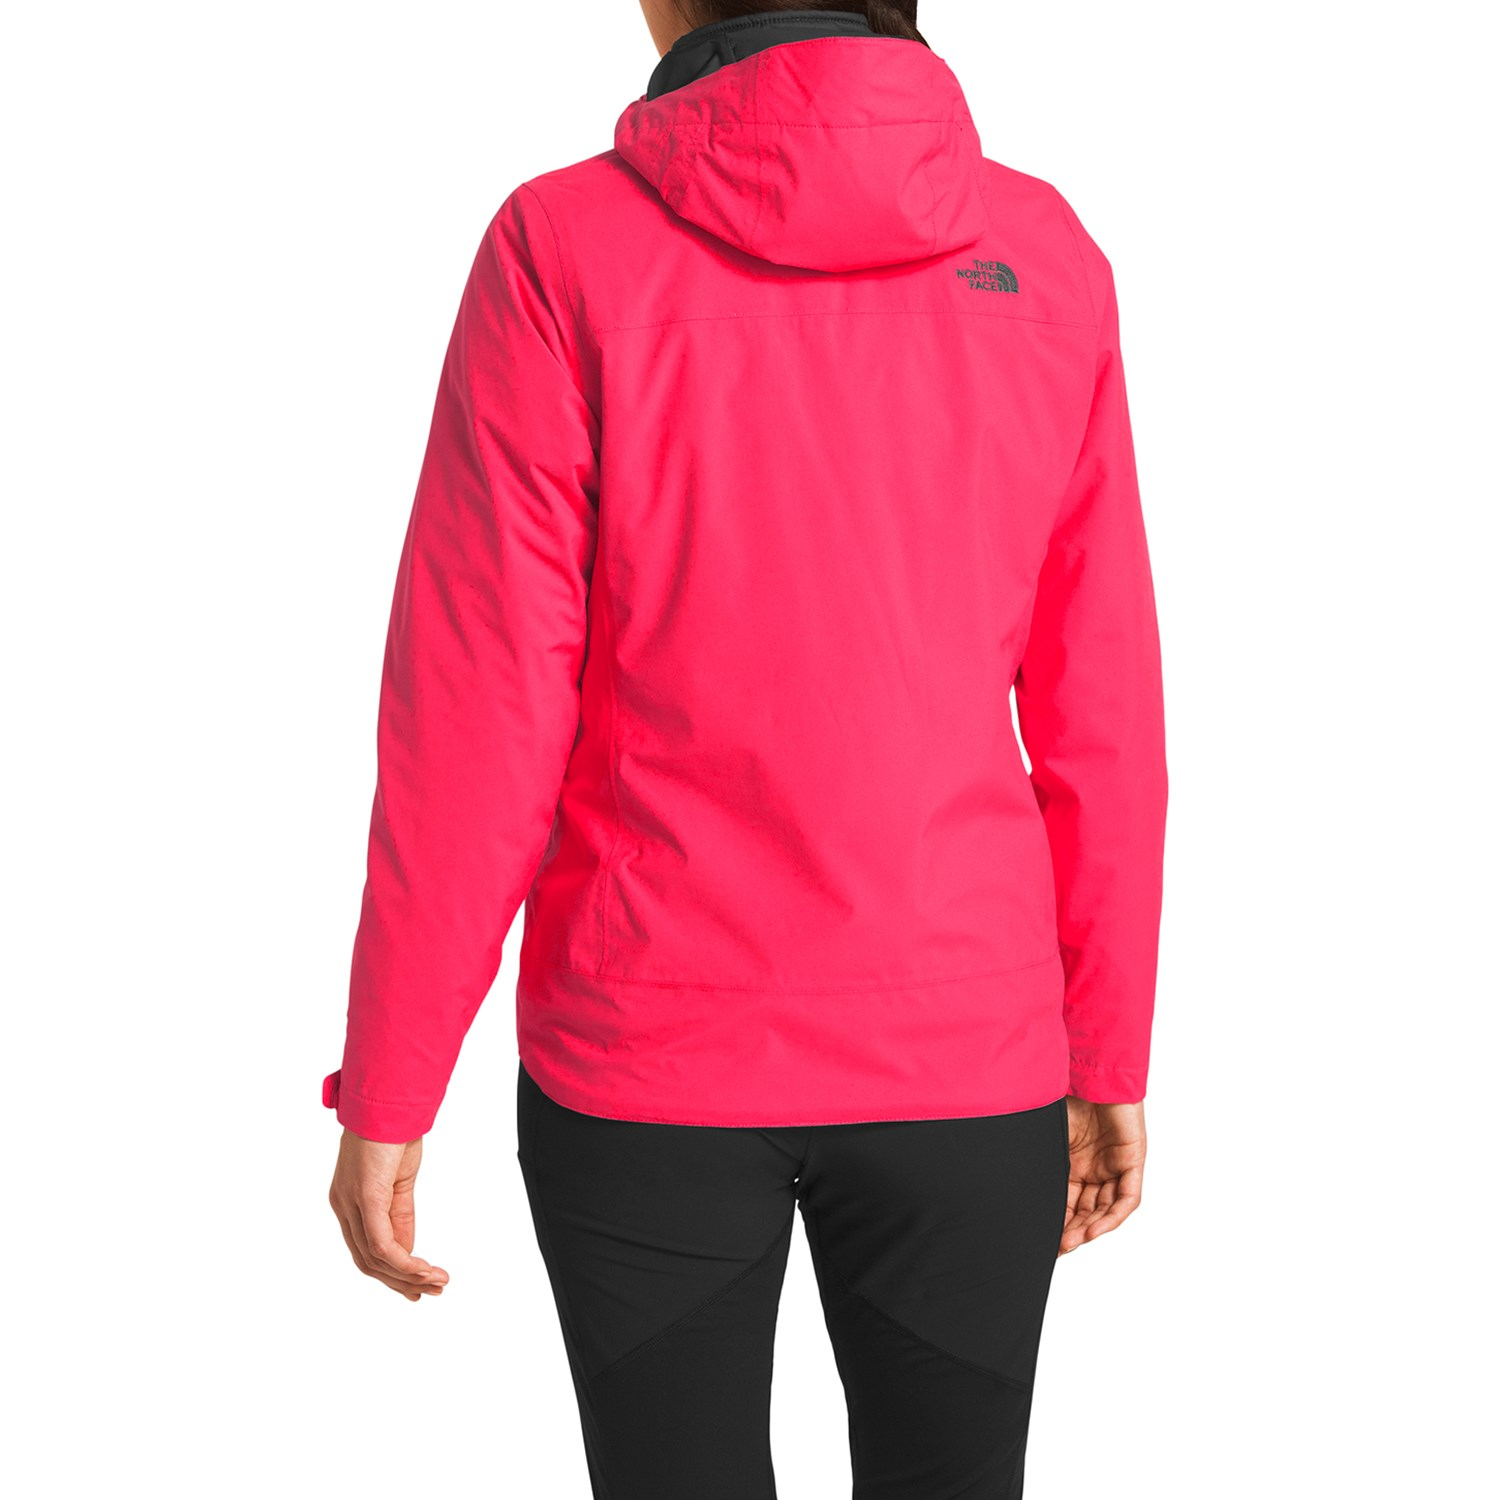 ce2dd2db3978a The North Face Carto Ticlimate® Jacket - Women s